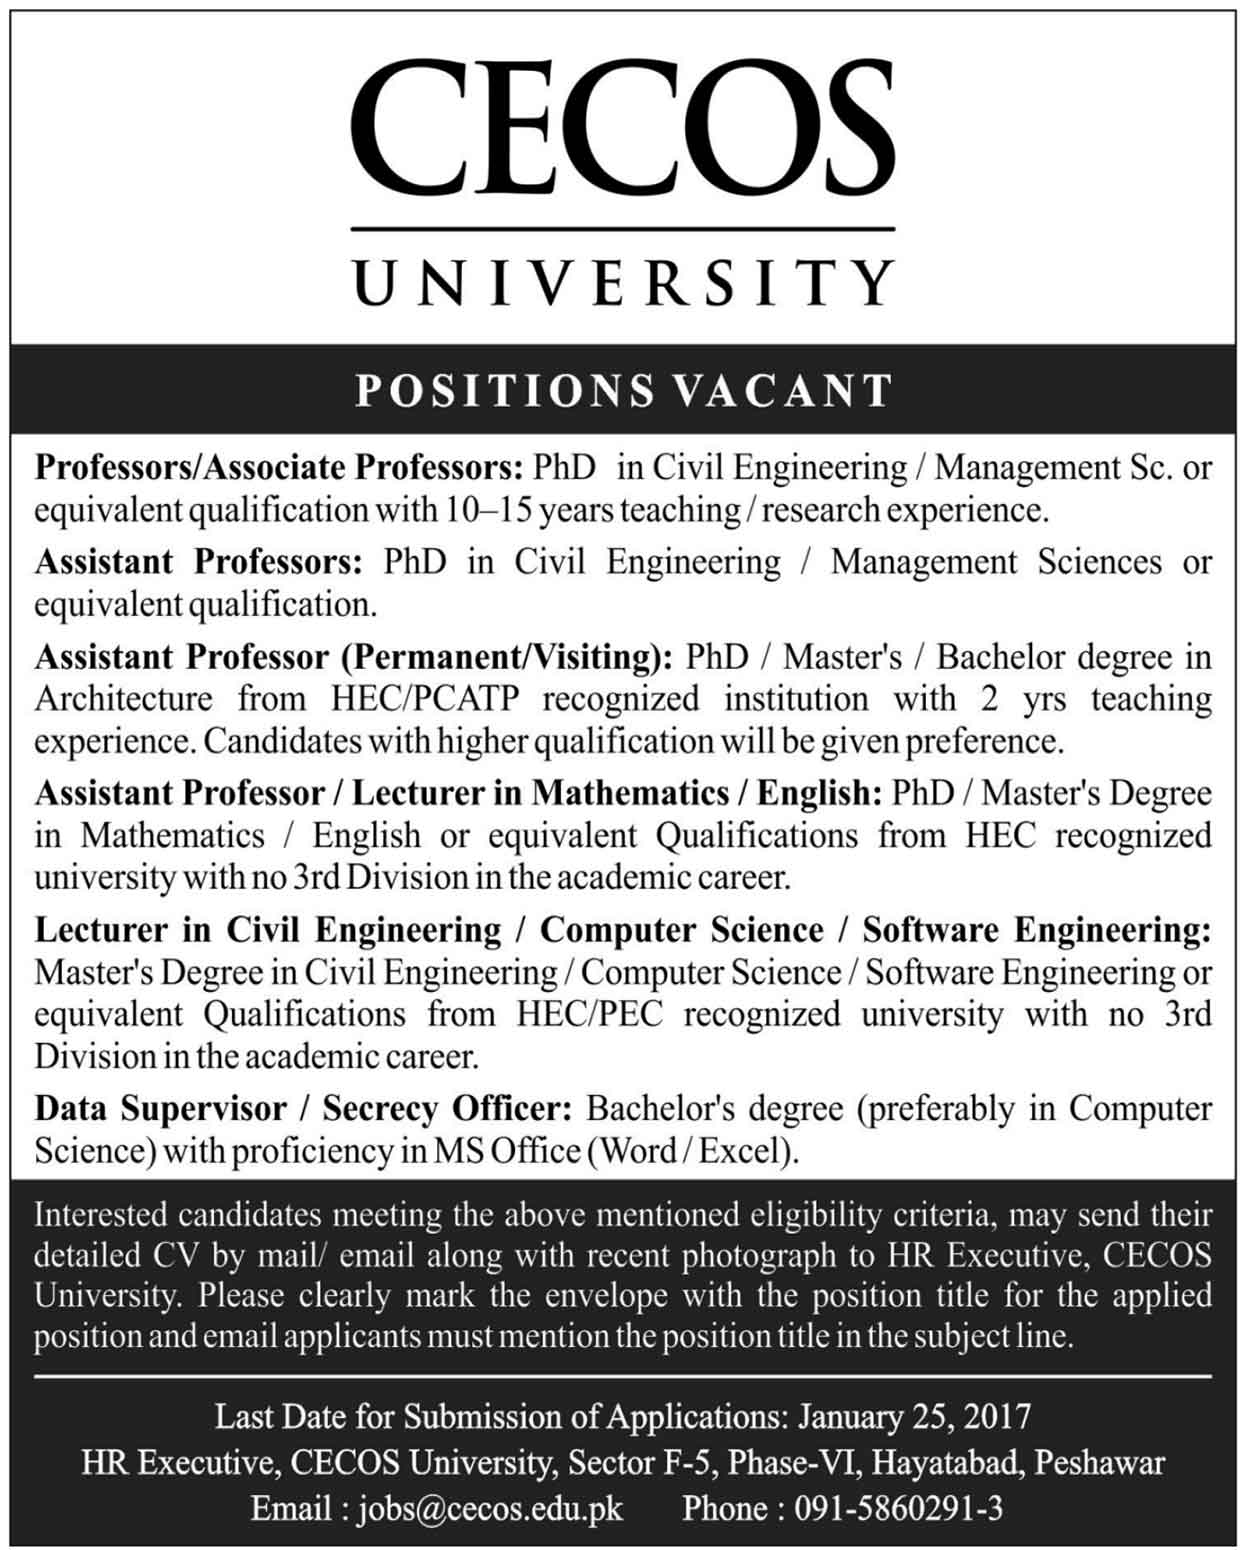 Cecos University Of Hayatabad Peshawar Jobs